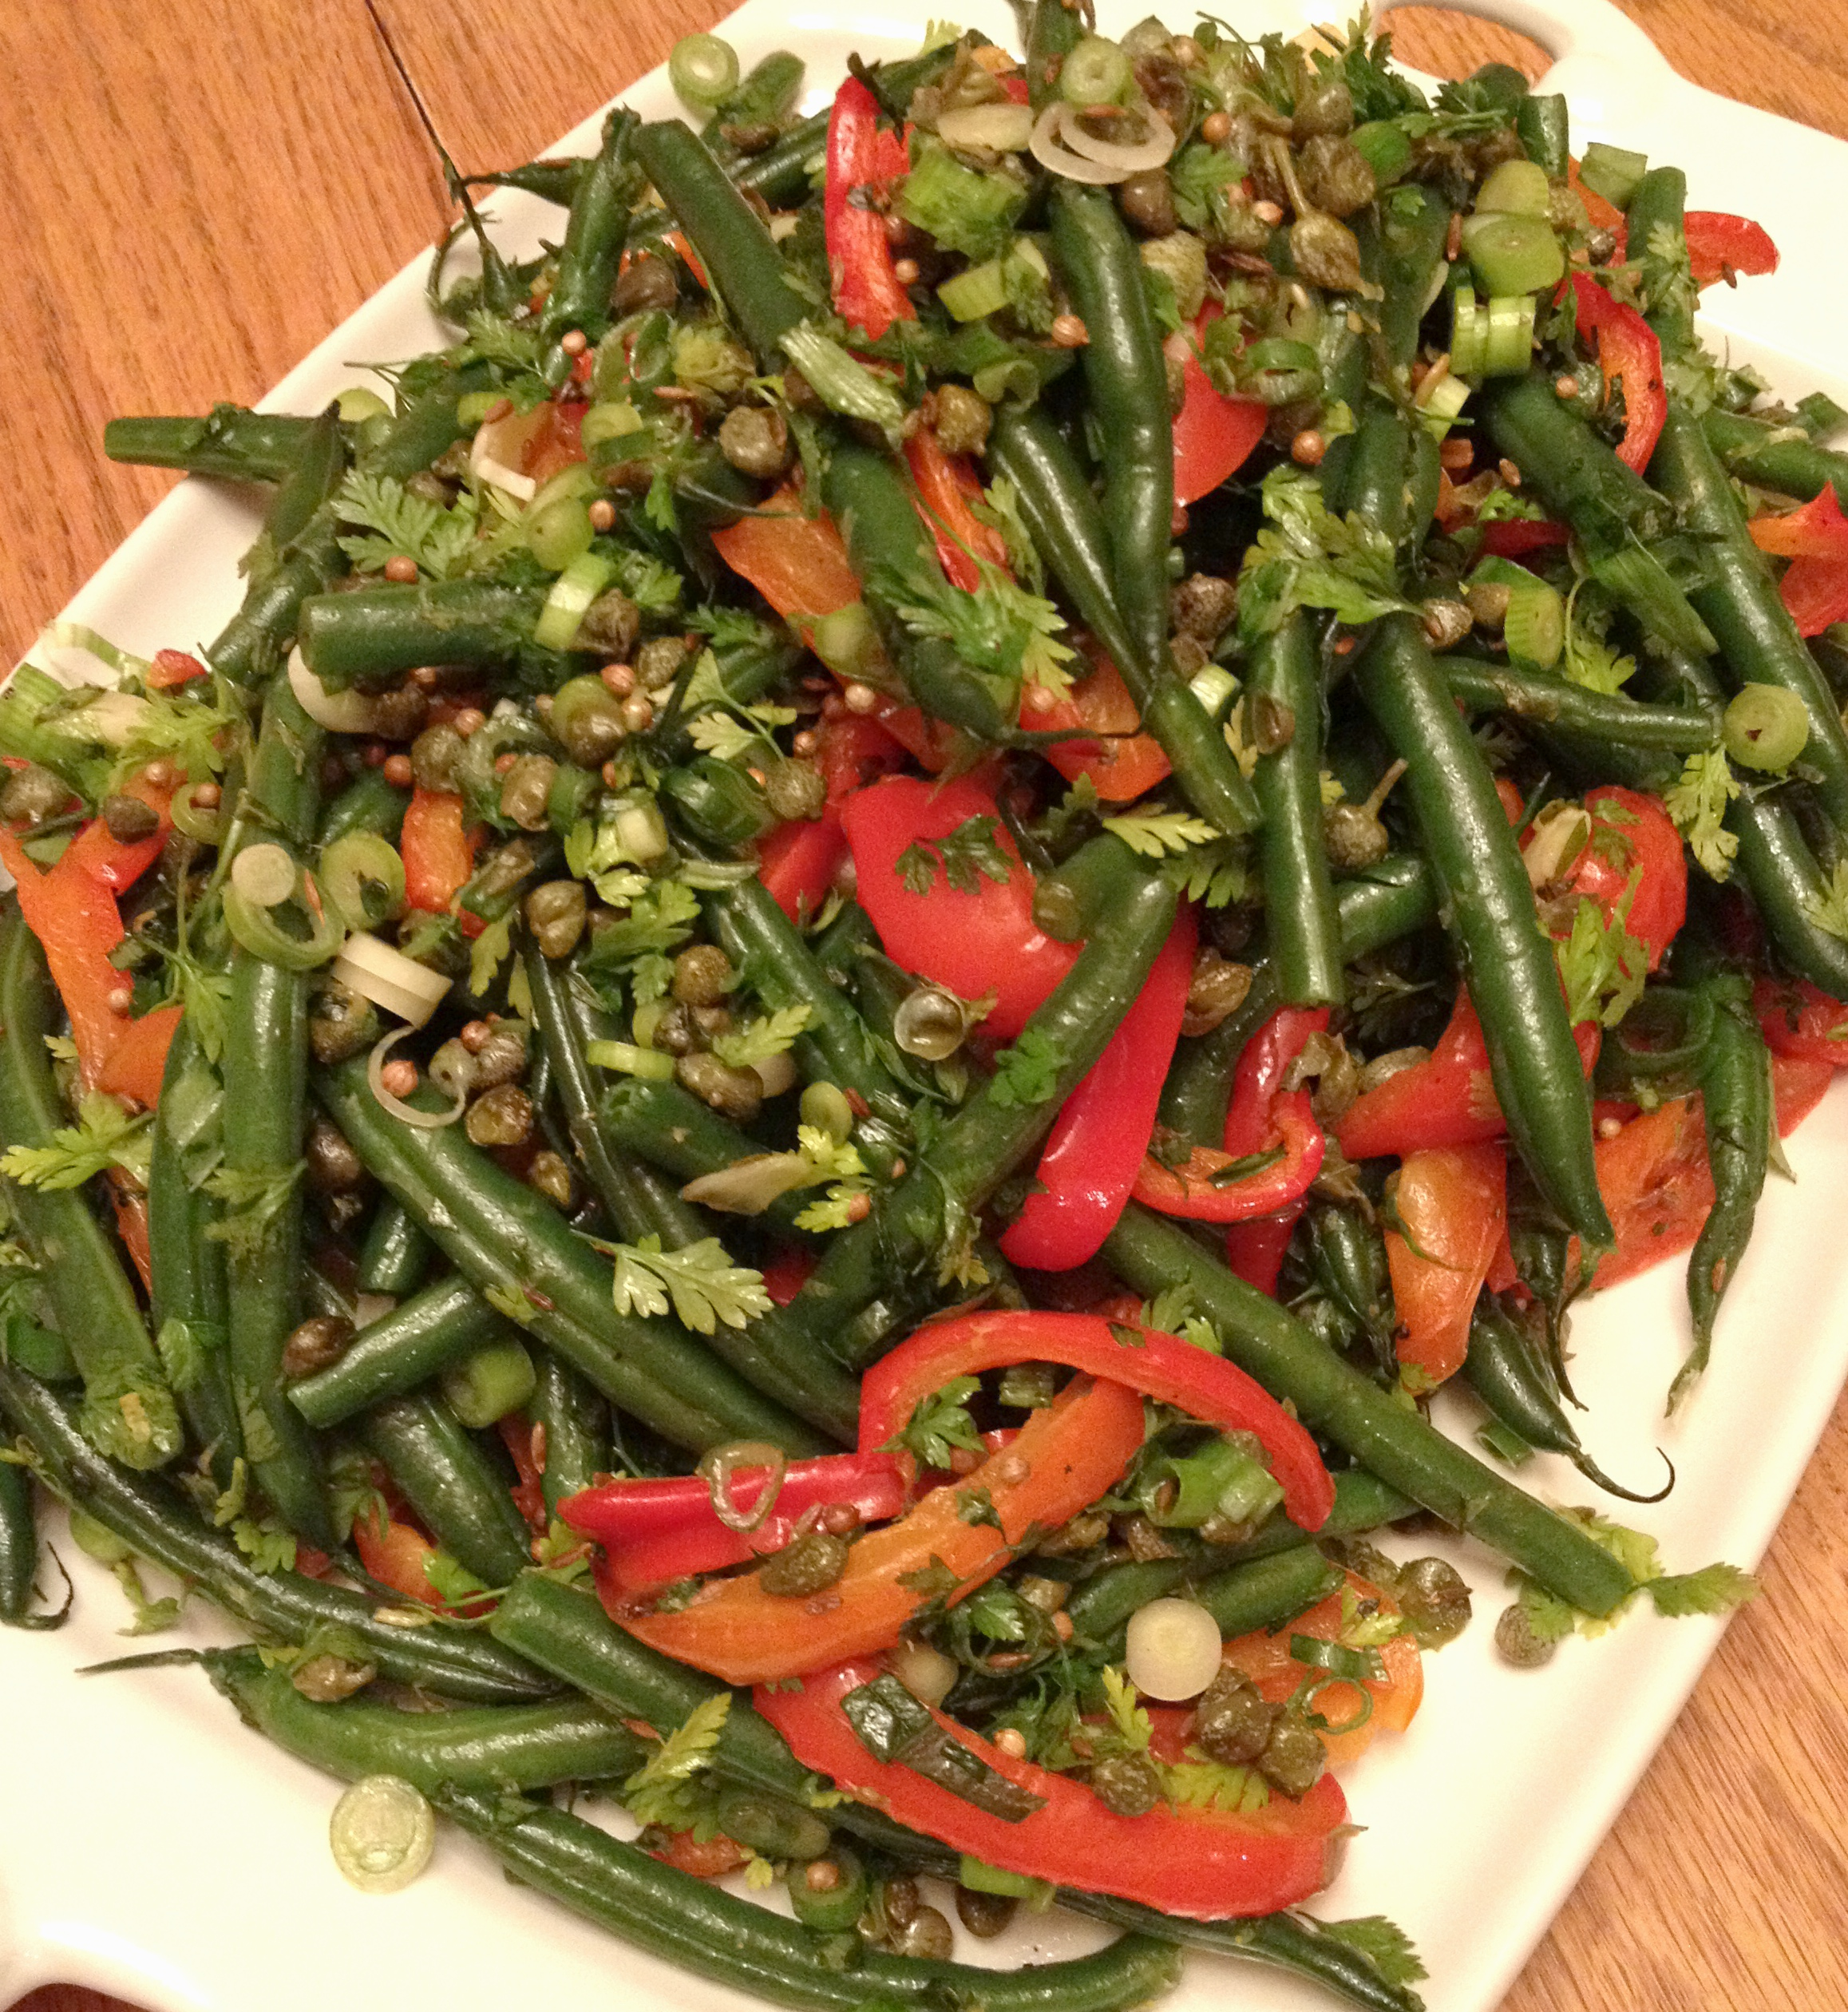 Mixed Bean Salad--A feast for the eyes, but not as beautiful on the palate.